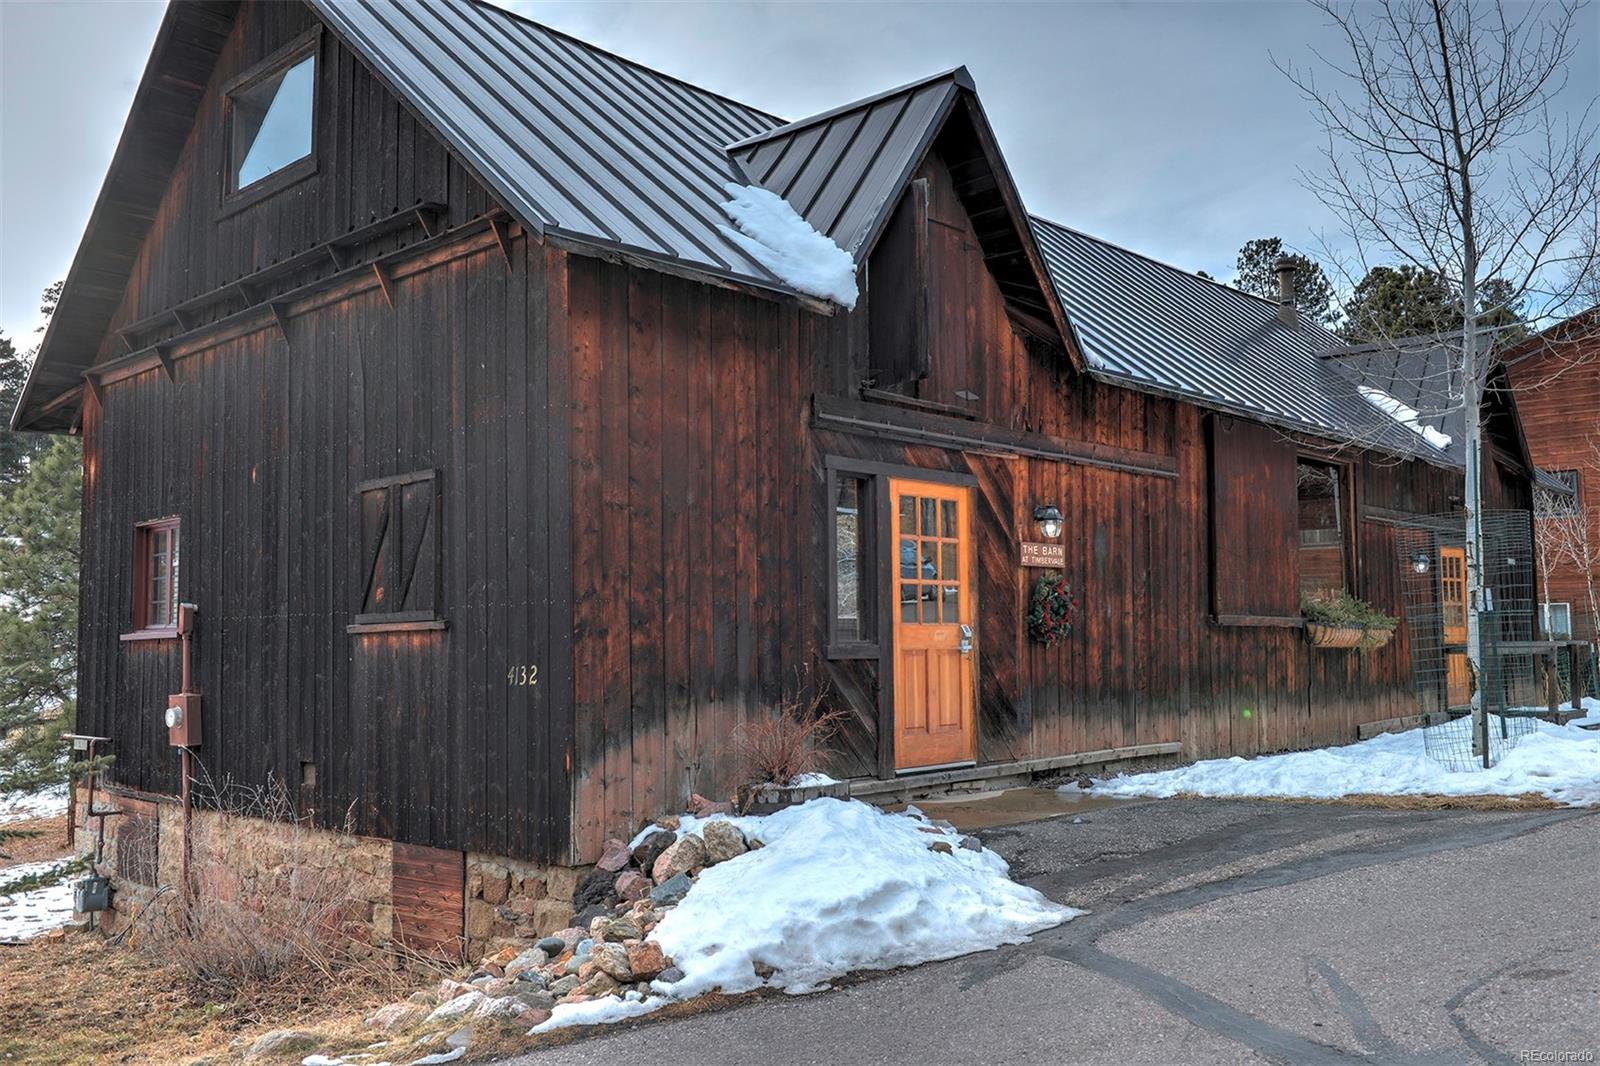 Timbervale community barn